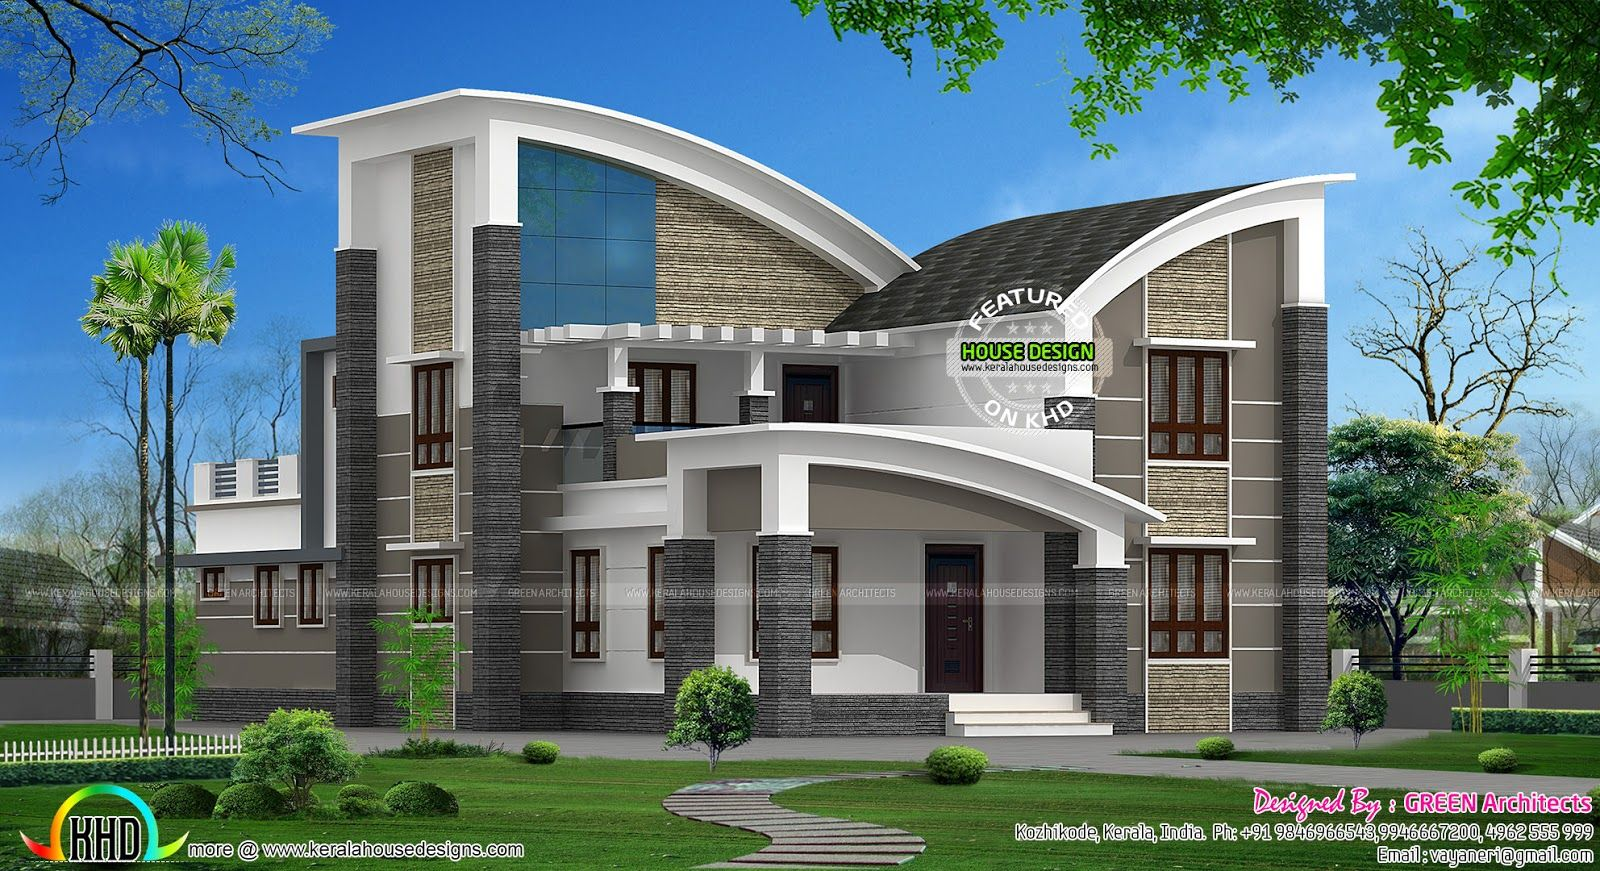 Image Result For Kerala House Images With Curves Roofing